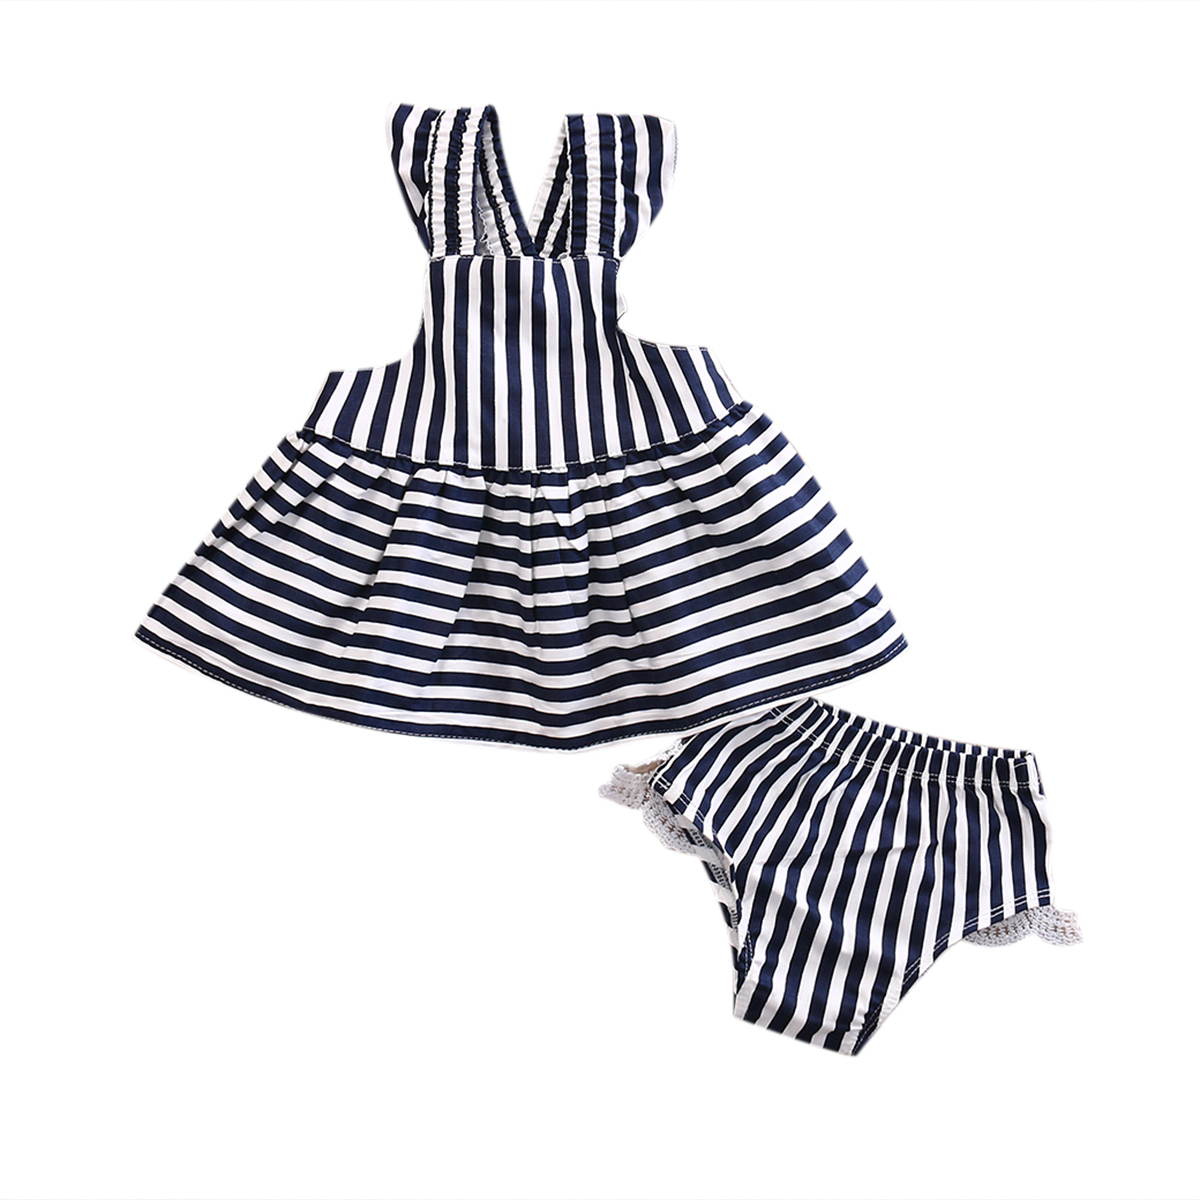 Summer Newborn Infant Baby Girls Clothes Set Stripe Backless Sleeveless Dress Lace Shorts Briefs Outfit 2PCS